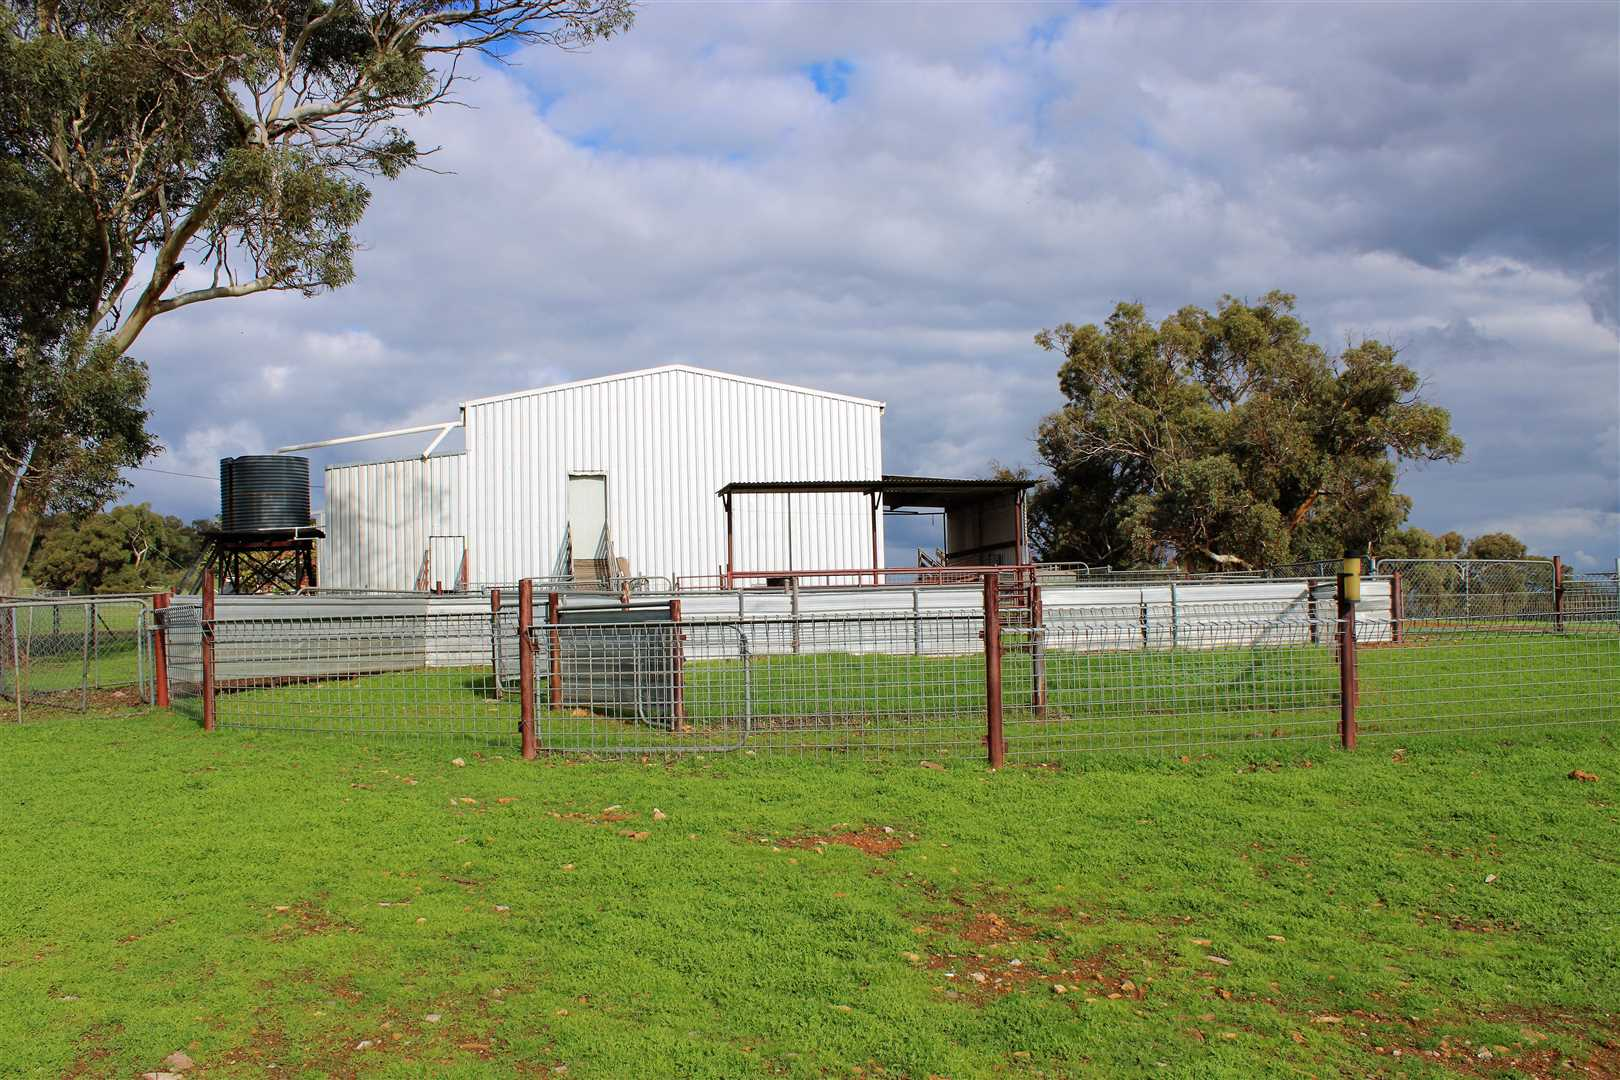 Yards and Shearing shed